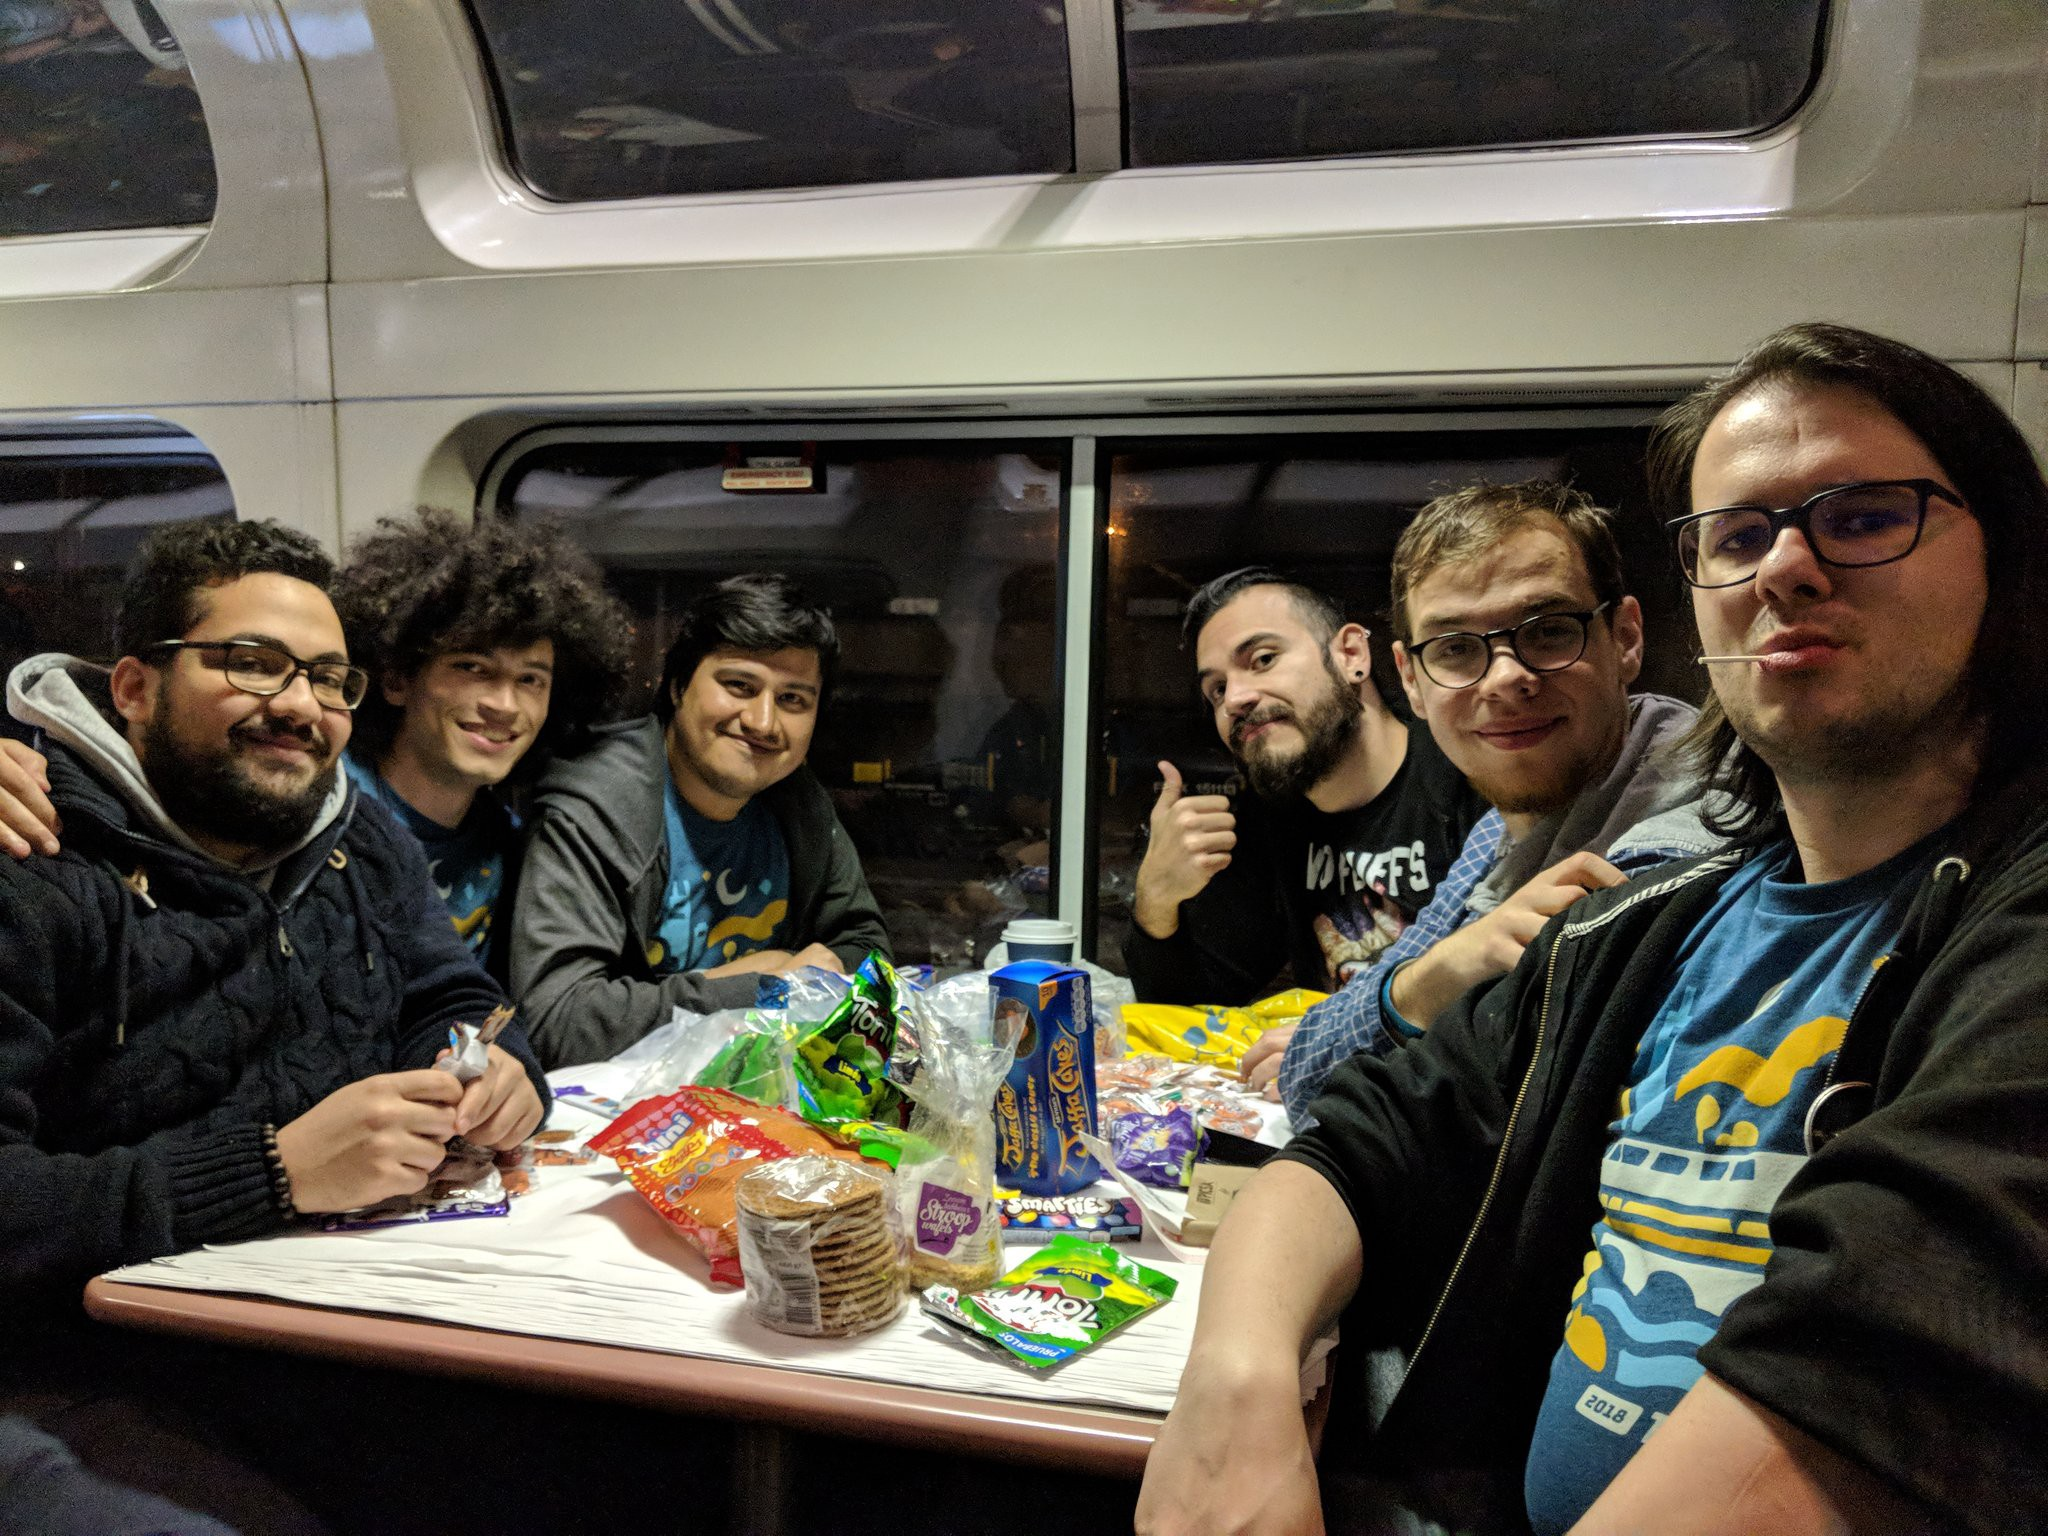 A special shout-out to the candy crew! It was great to share most of the last night at the train with you. Thanks Fáyer for sharing the picture and the Mexican treats.